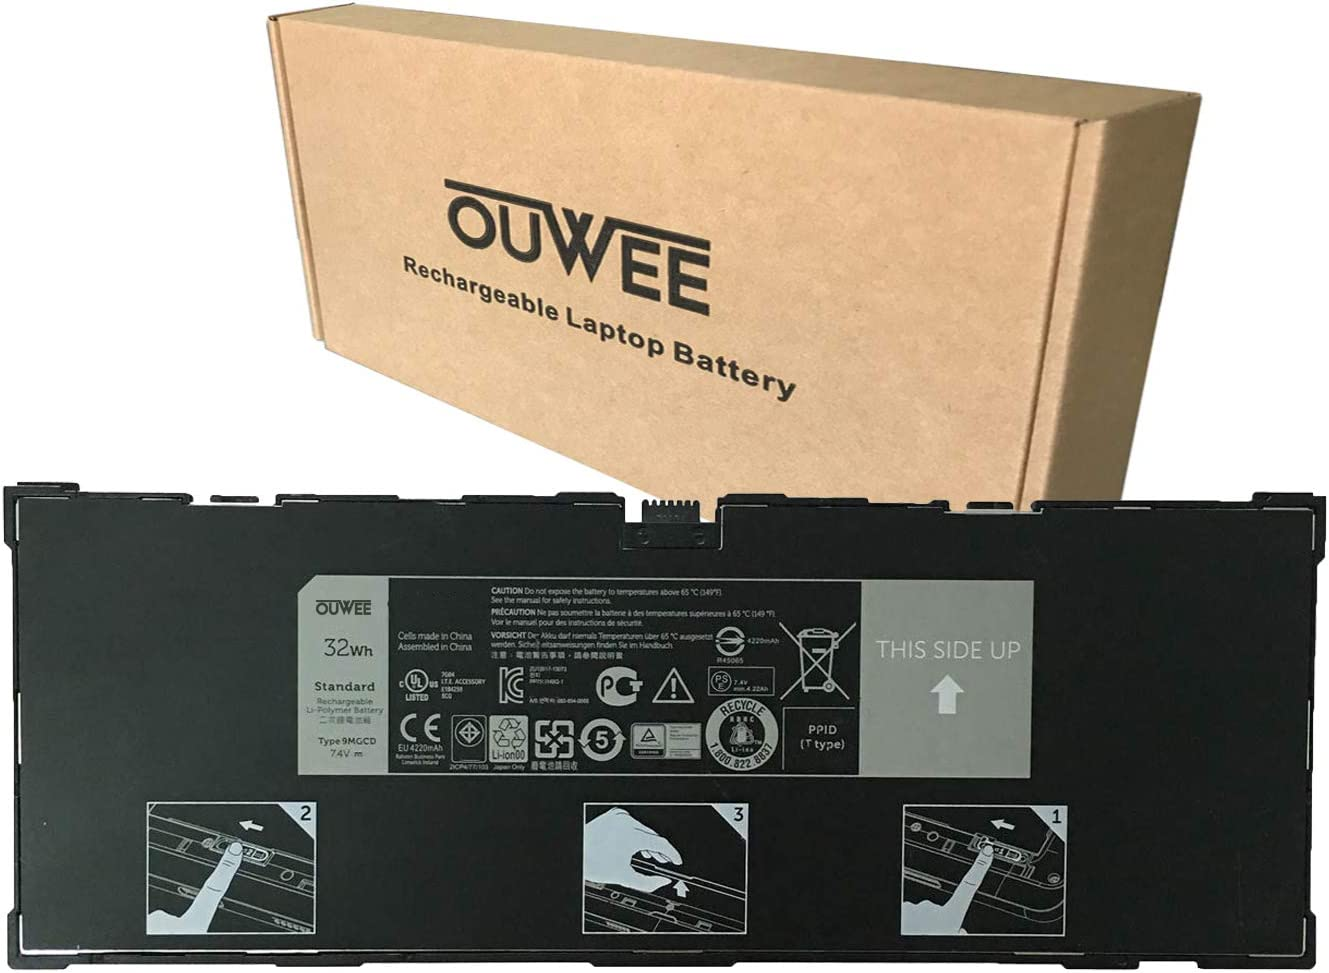 OUWEE 9MGCD Laptop Battery Compatible with Dell Venue 11 Pro 5130 Tablet Series Notebook XMFY3 312-1453 VYP88 0XMFY3 T8NH4 0T8NH4 7.4V 32Wh 4220mAh 2-Cell